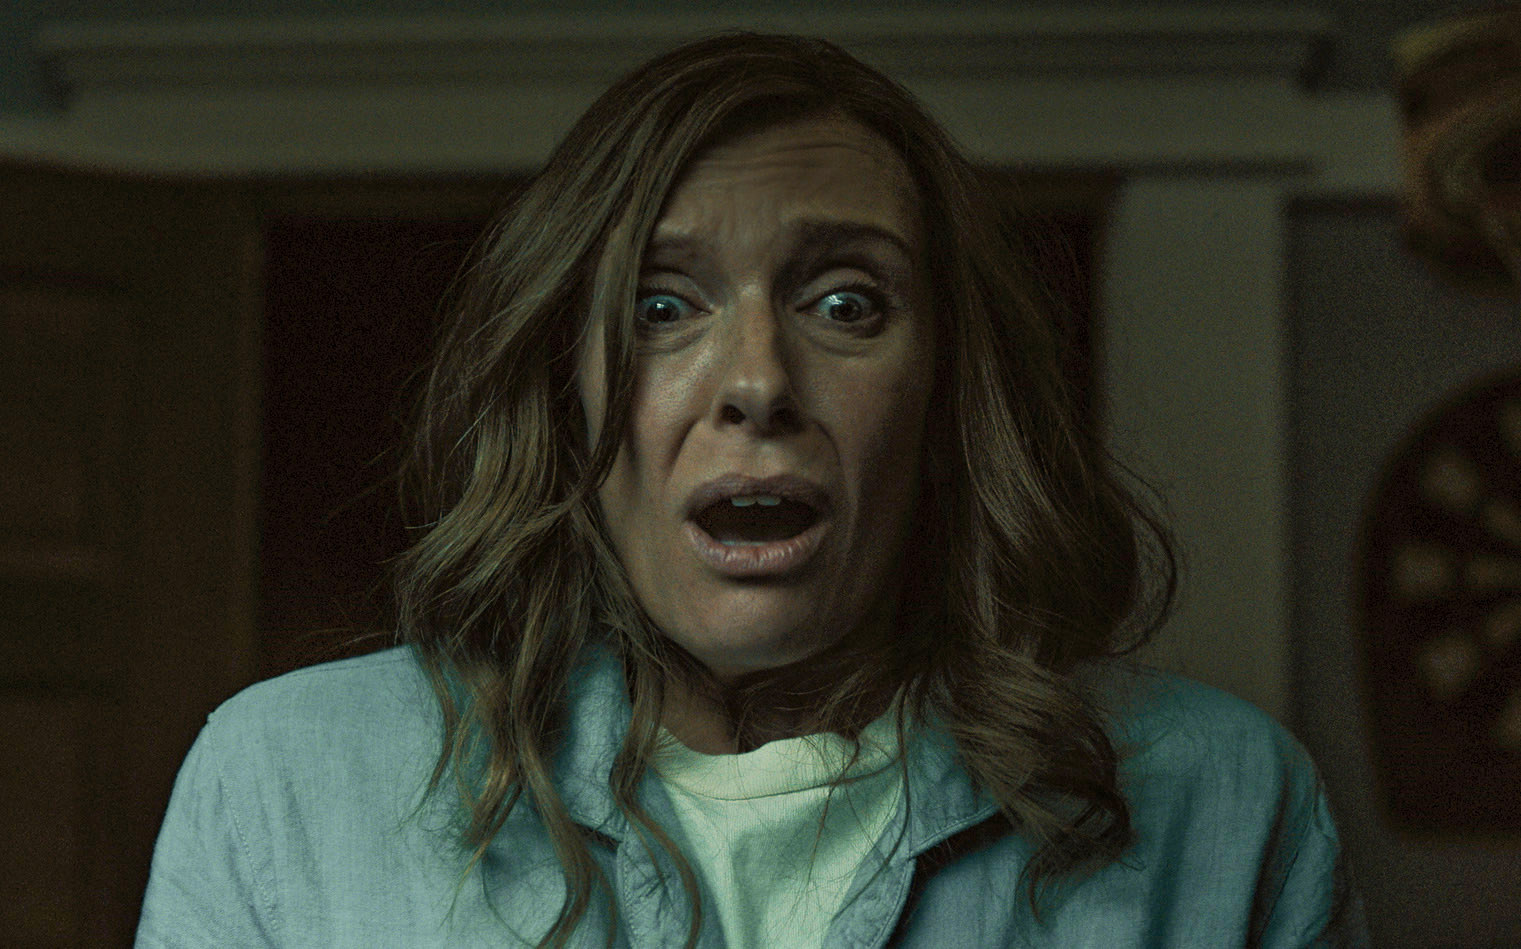 """Toni Collette terrified in """"Hereditary"""""""